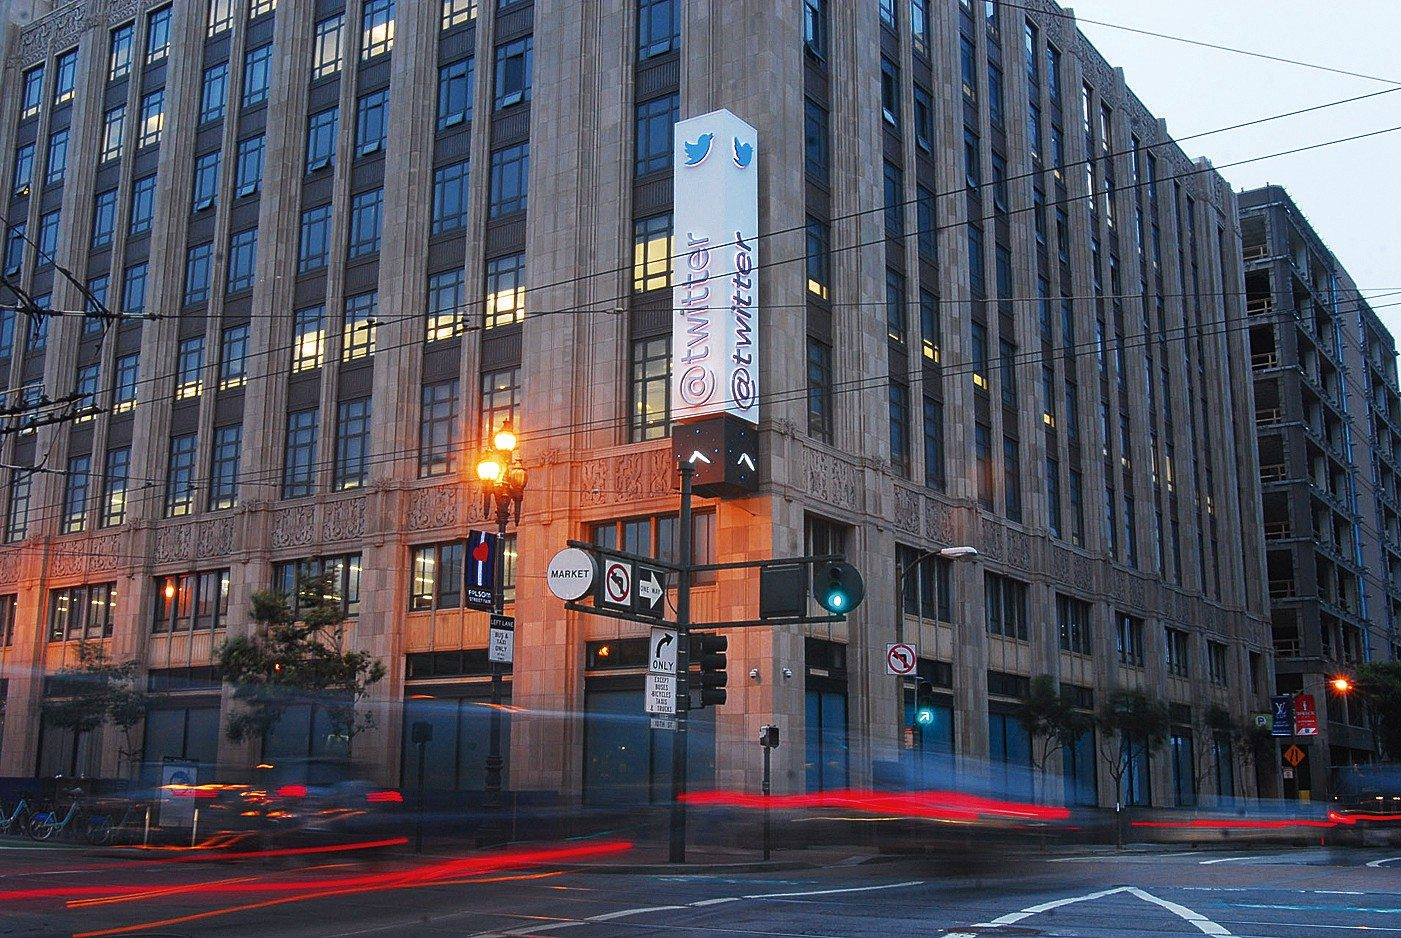 EVAN DUCHARME/S.F. EXAMINER FILE PHOTOPictured: Twitter's Market Street headquarters. Not pictured: a giant pot cloud